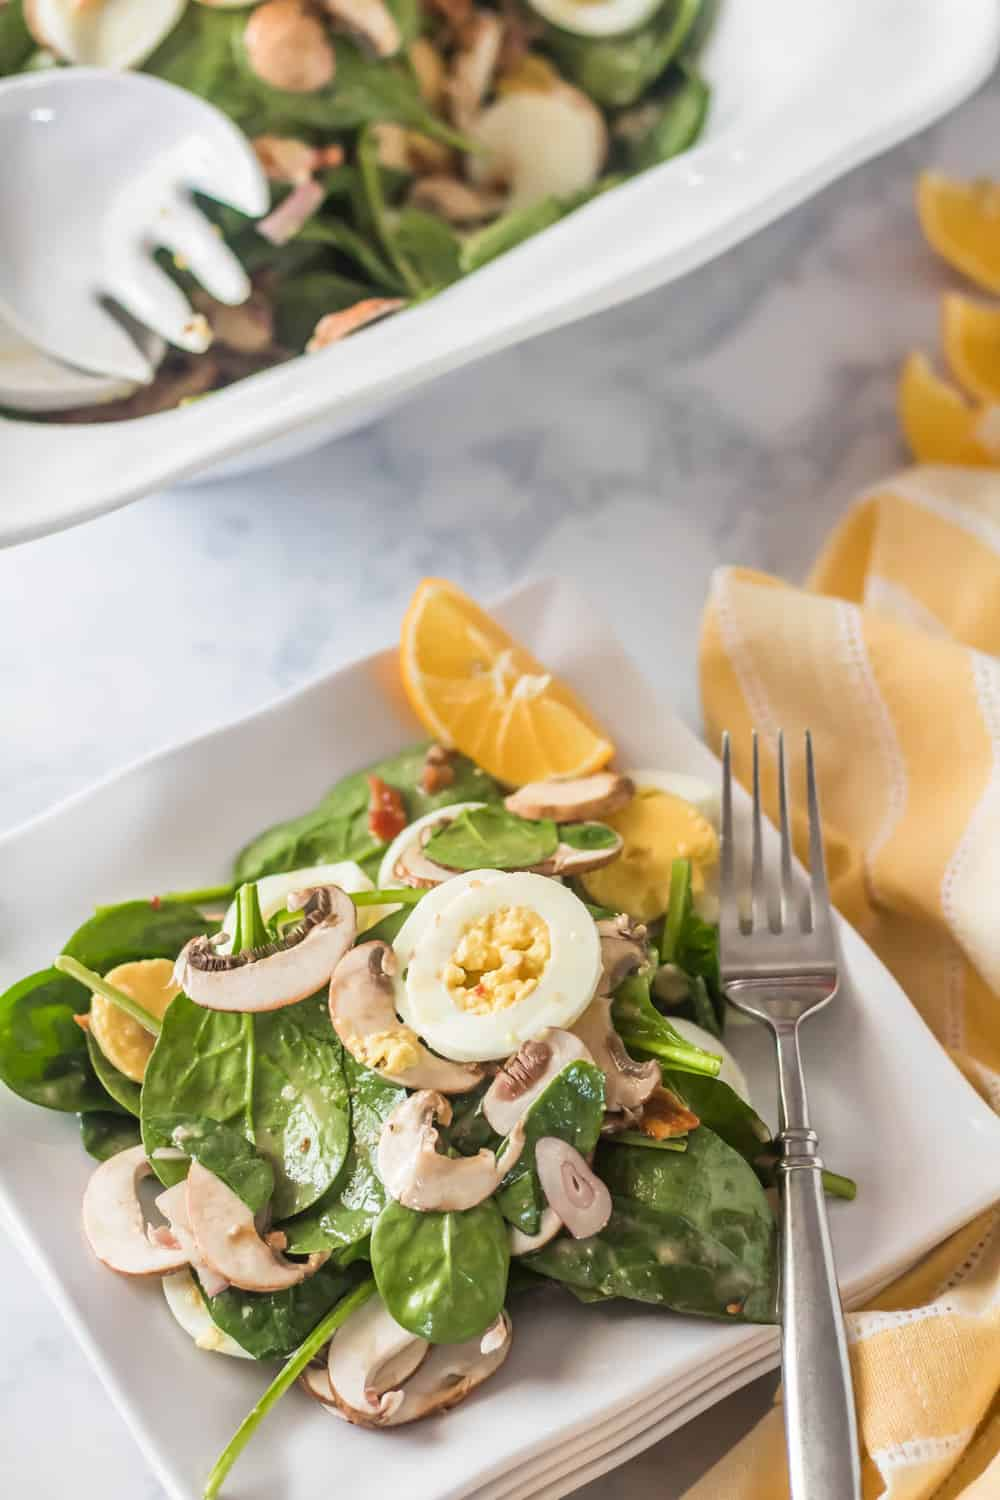 Classic Spinach Salad with Honey Dijon Vinaigrette - An individual plate of spinach salad with a fork.